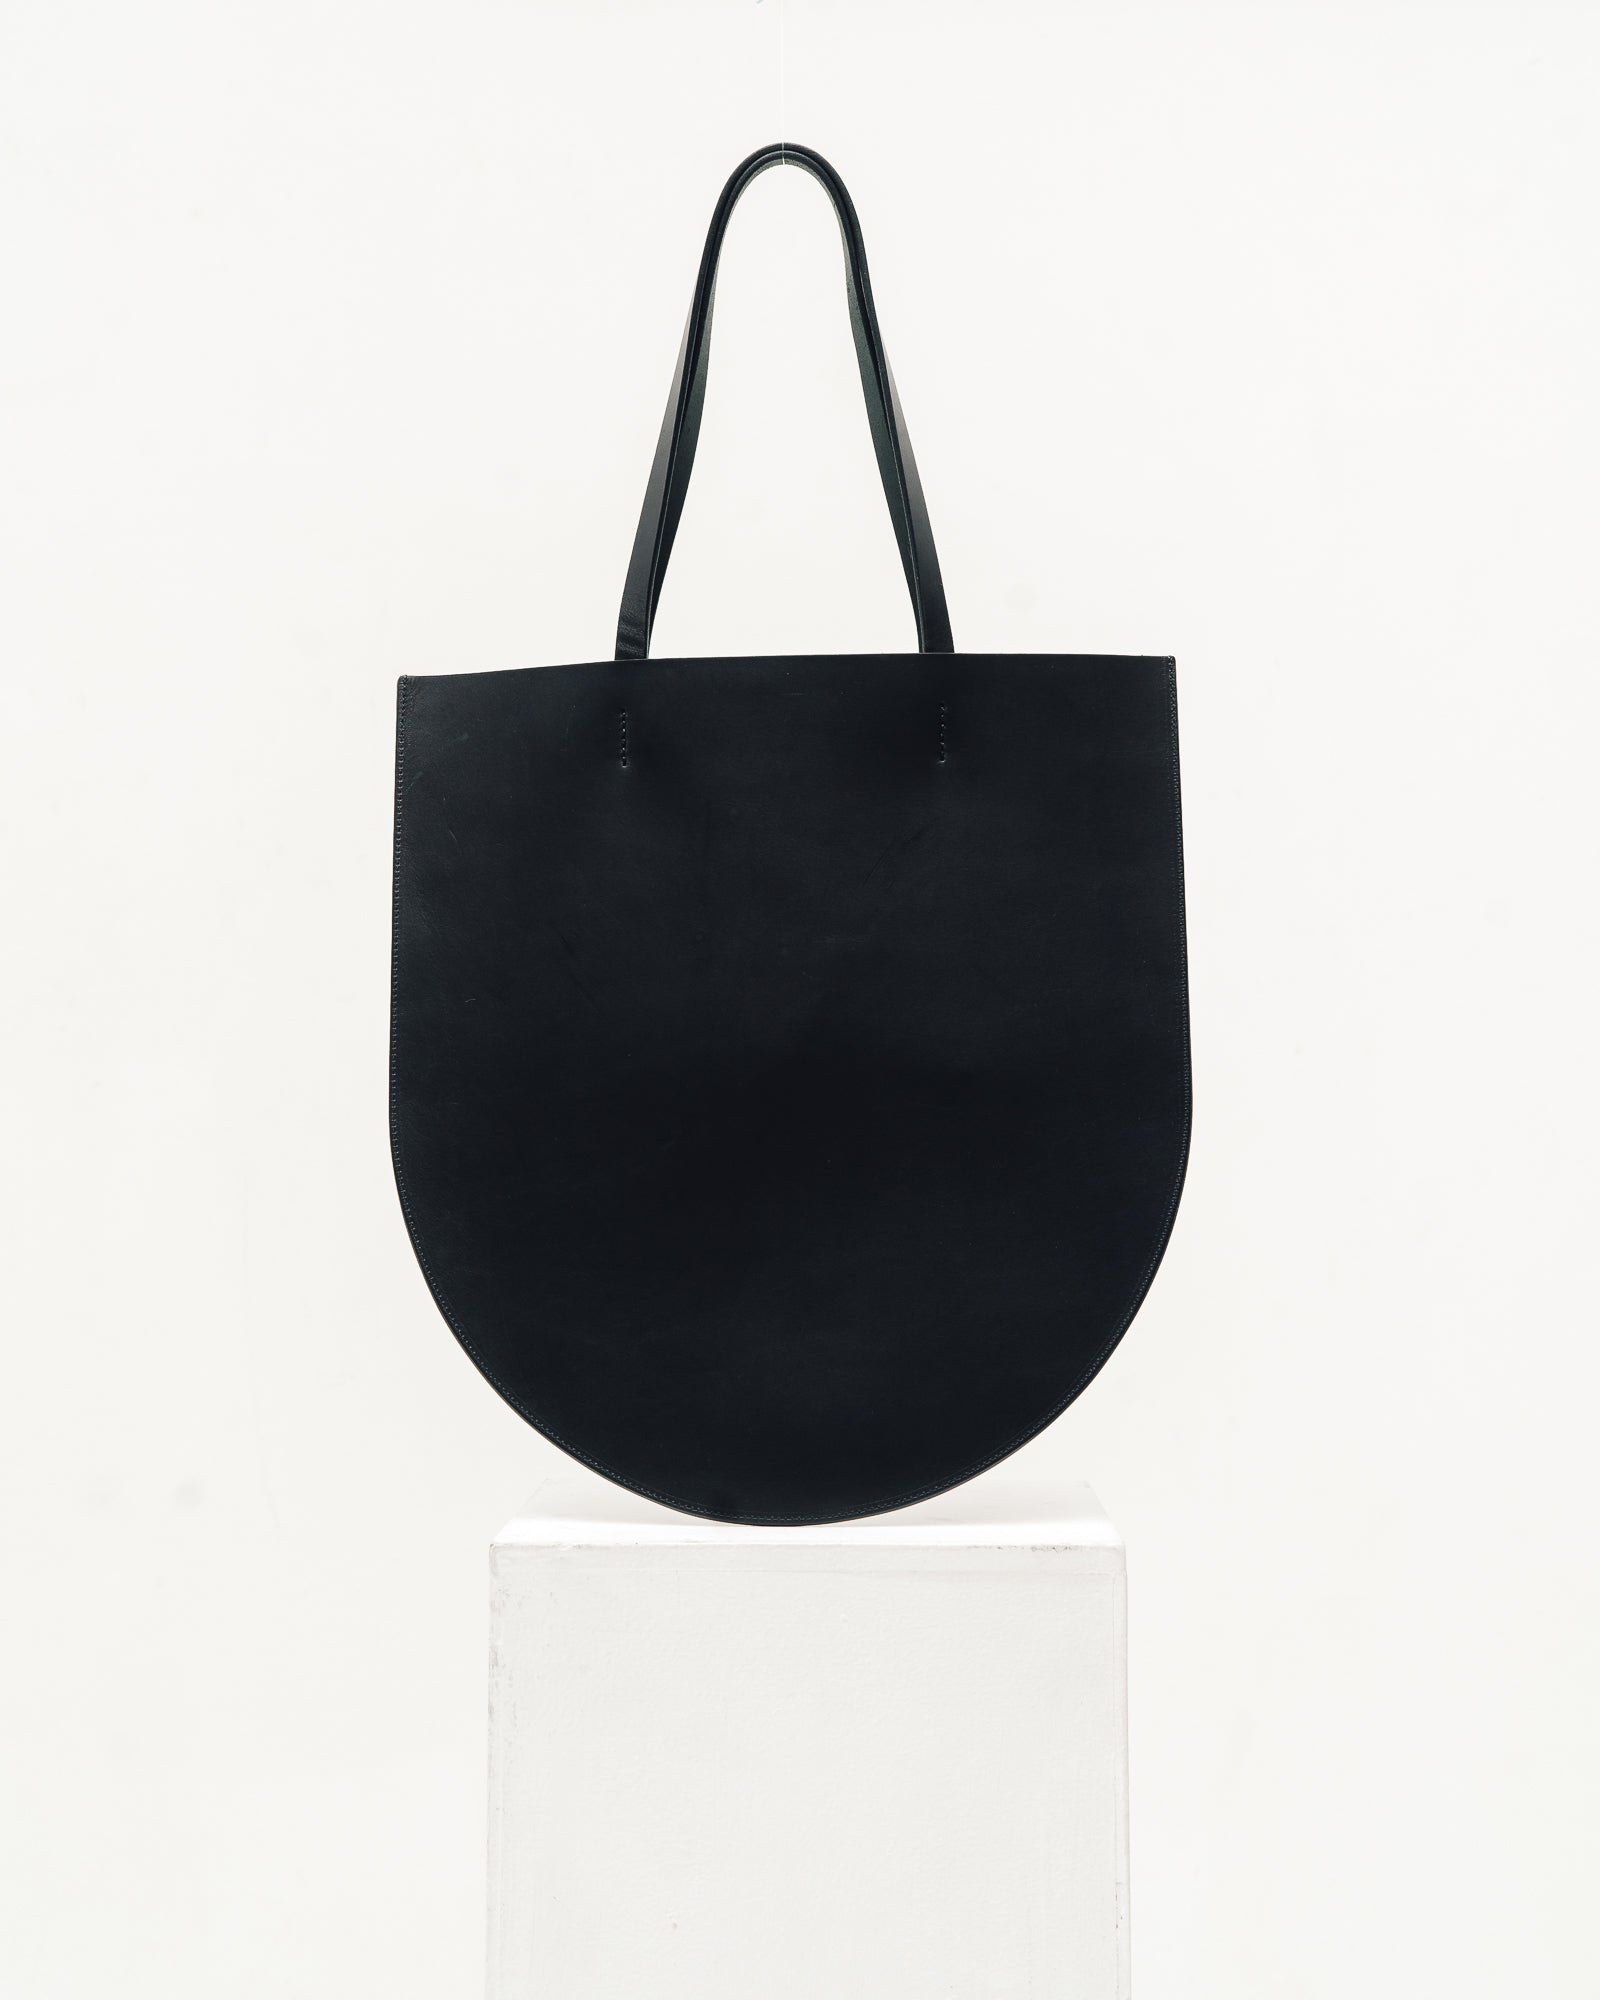 Sara Barner Thompson Bag, Black